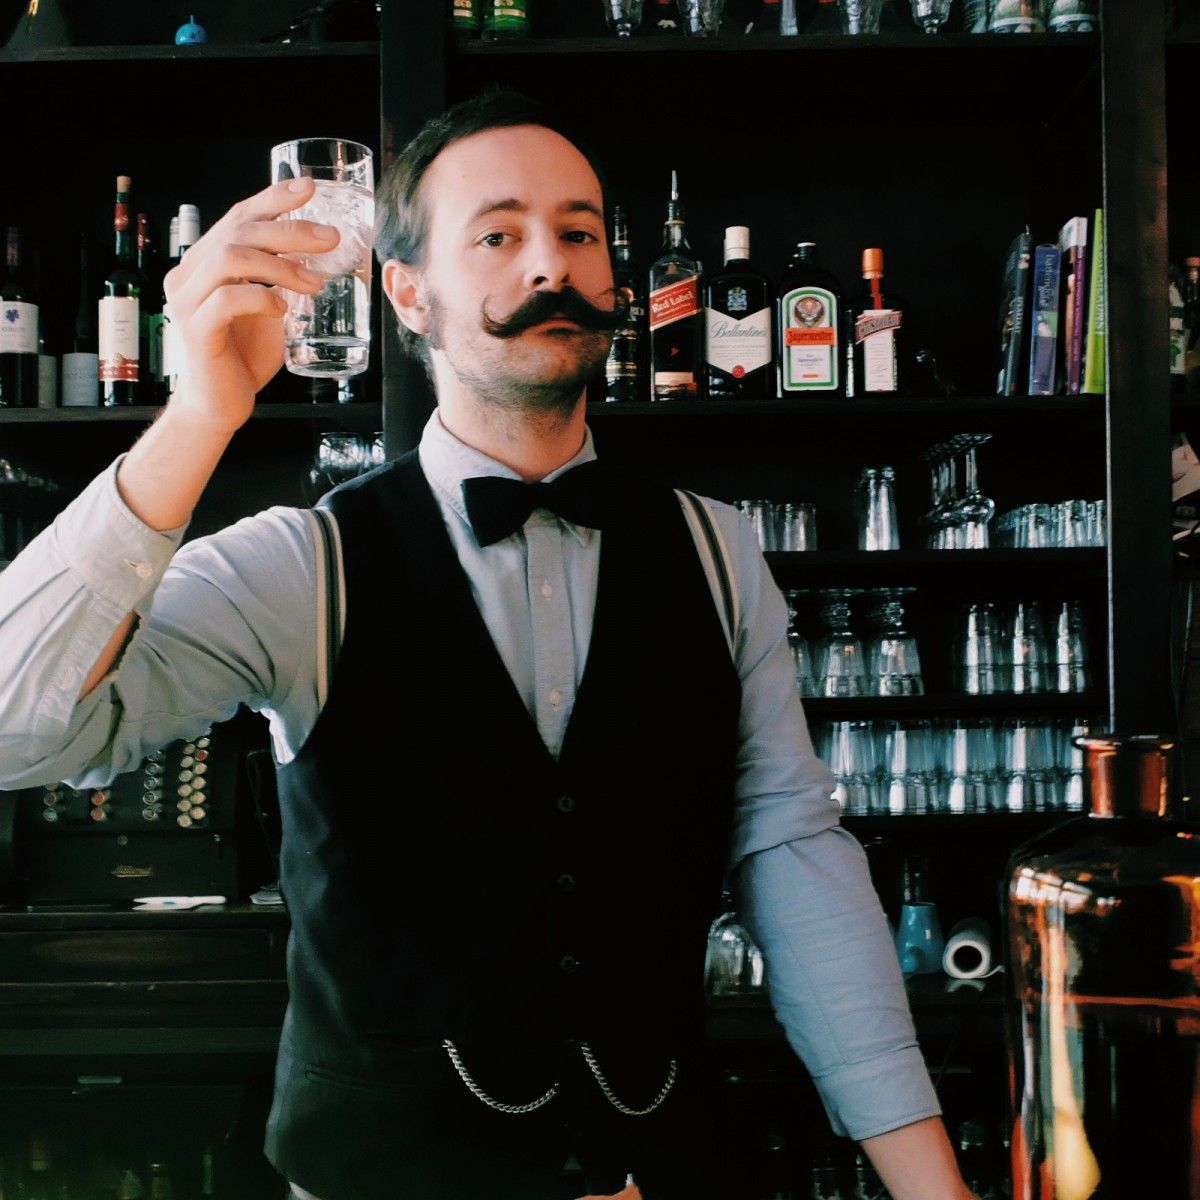 Pix For u0026gt; 1920s Bartender Costume | party | Pinterest | Bartenders Costumes and Halloween costumes